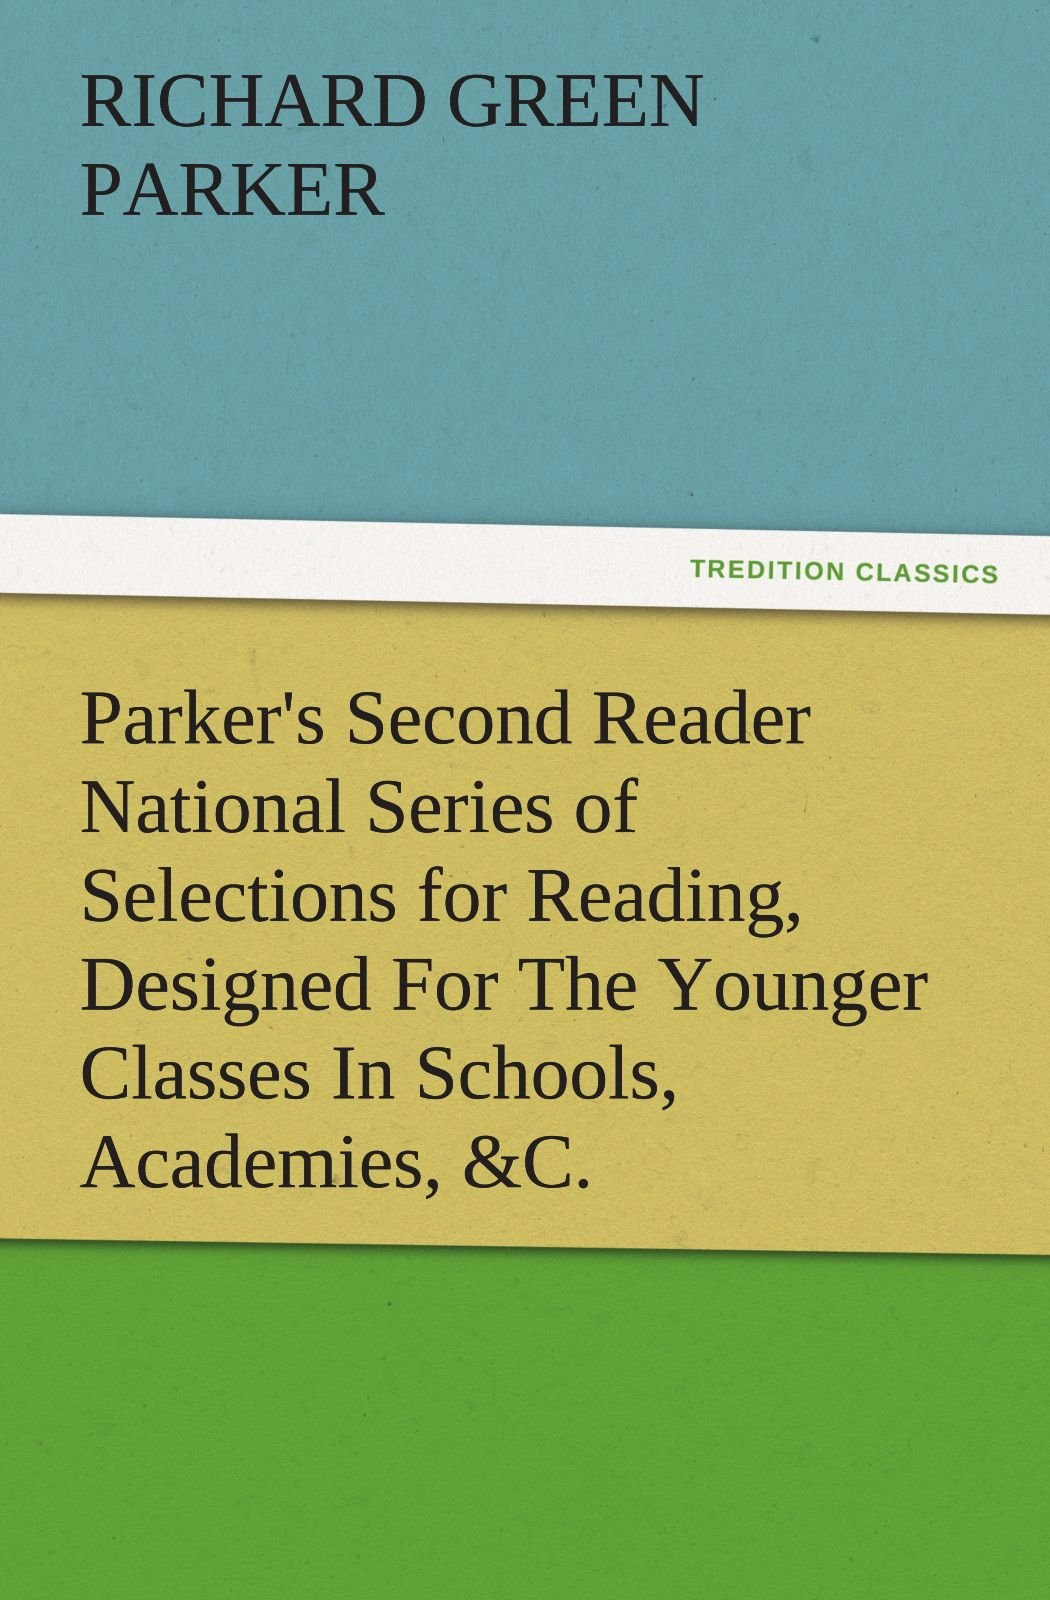 Parker's Second Reader National Series of Selections for Reading, Designed For The Younger Classes In Schools, Academies, &C. (TREDITION CLASSICS) PDF